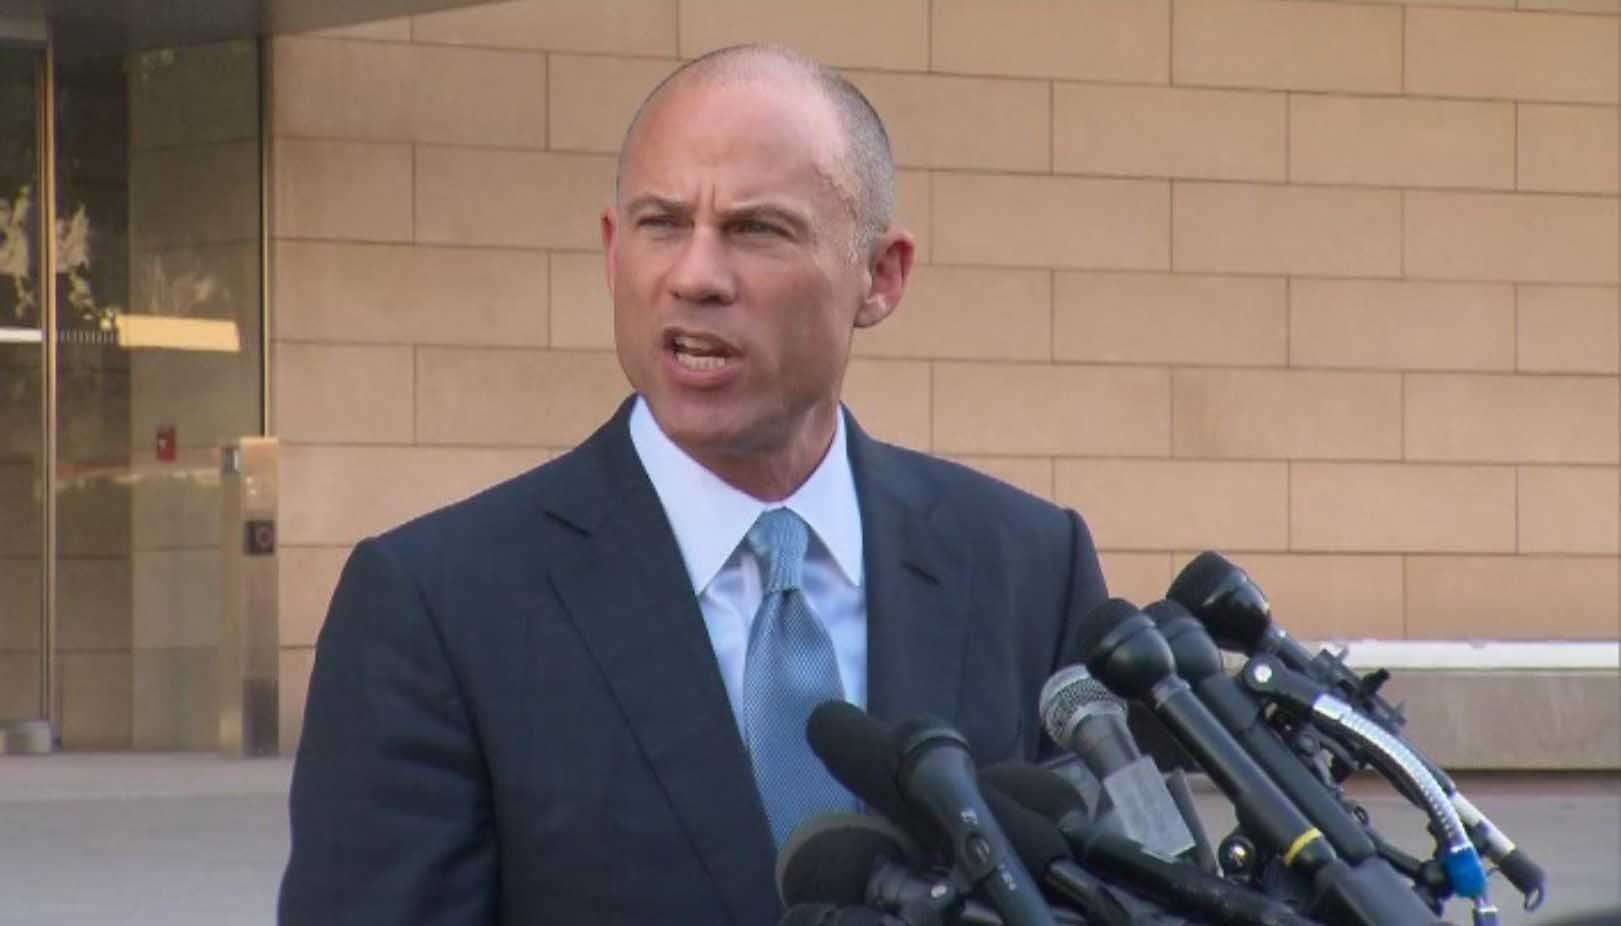 Avenatti said a third woman is ready to come forward to accuse Supreme Court nominee Brett Kavanaugh of sexual misconduct. (Source: CNN)